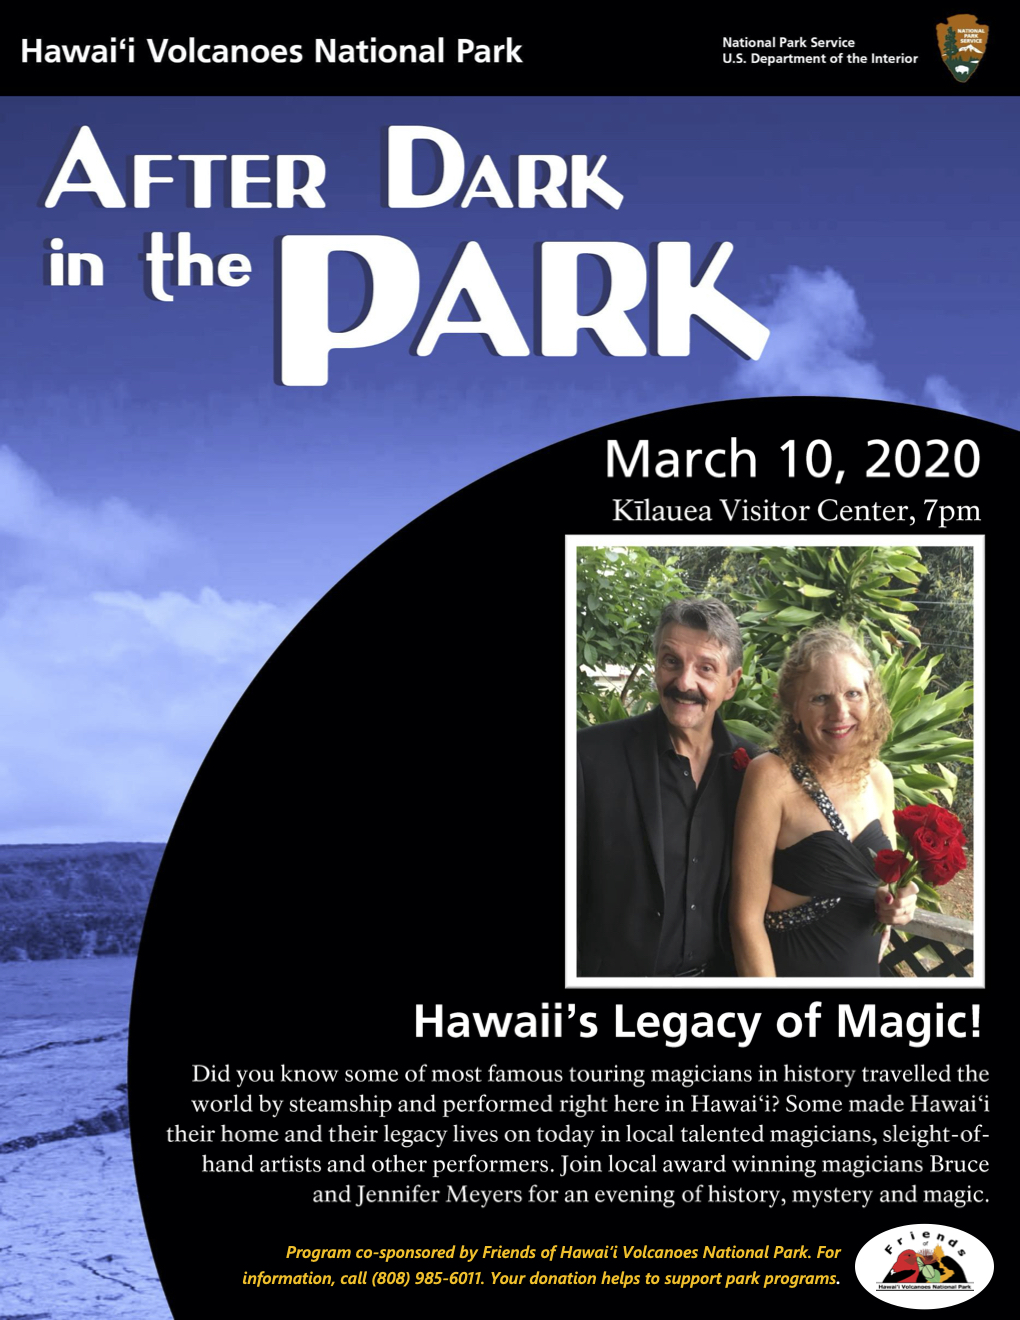 After Dark Magic Poster